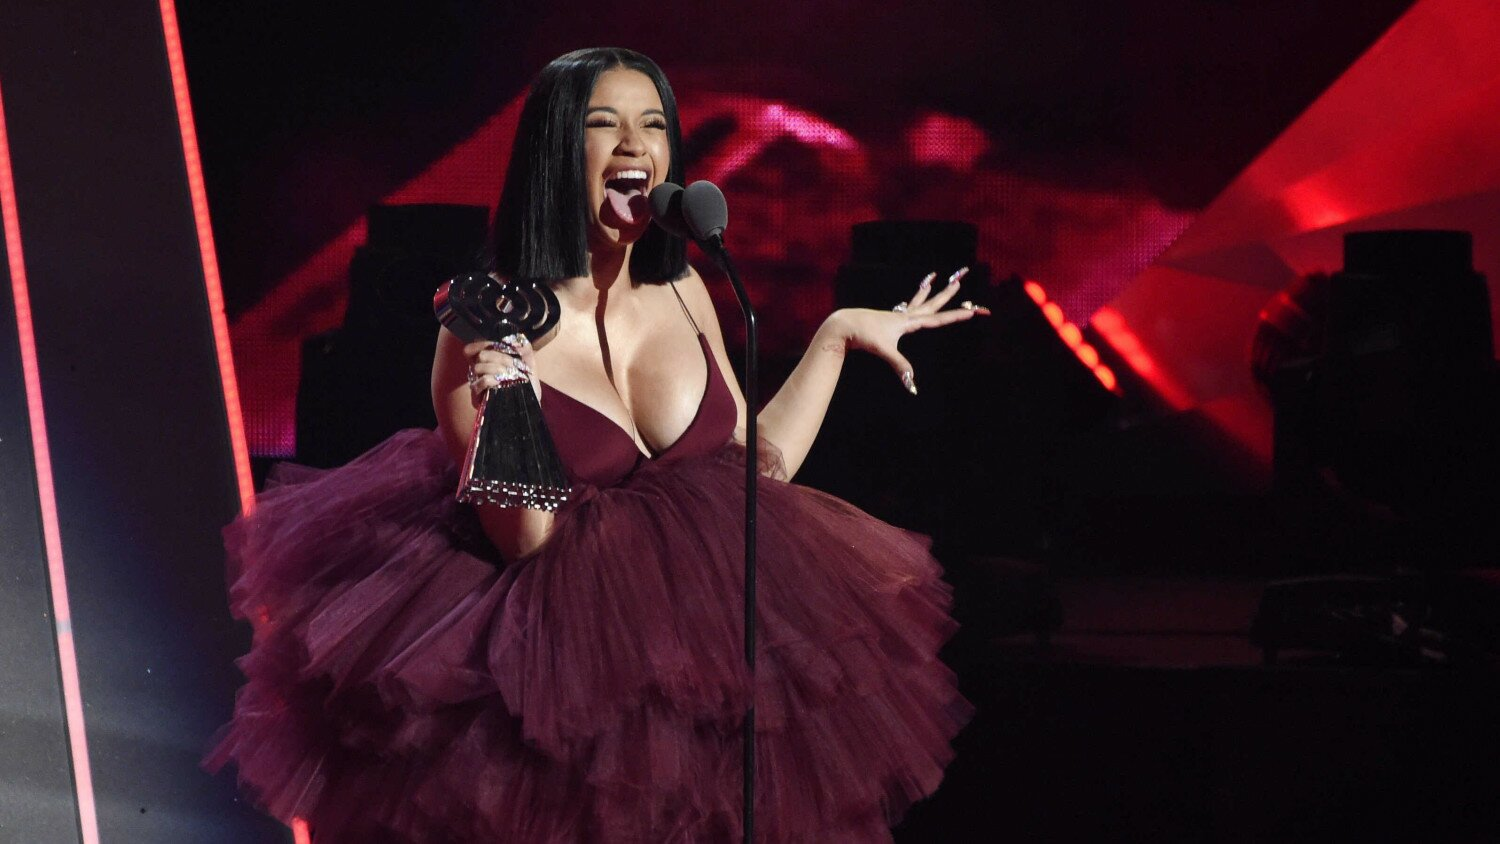 Cardi B declares she is 'single, bad and rich' after Offset split